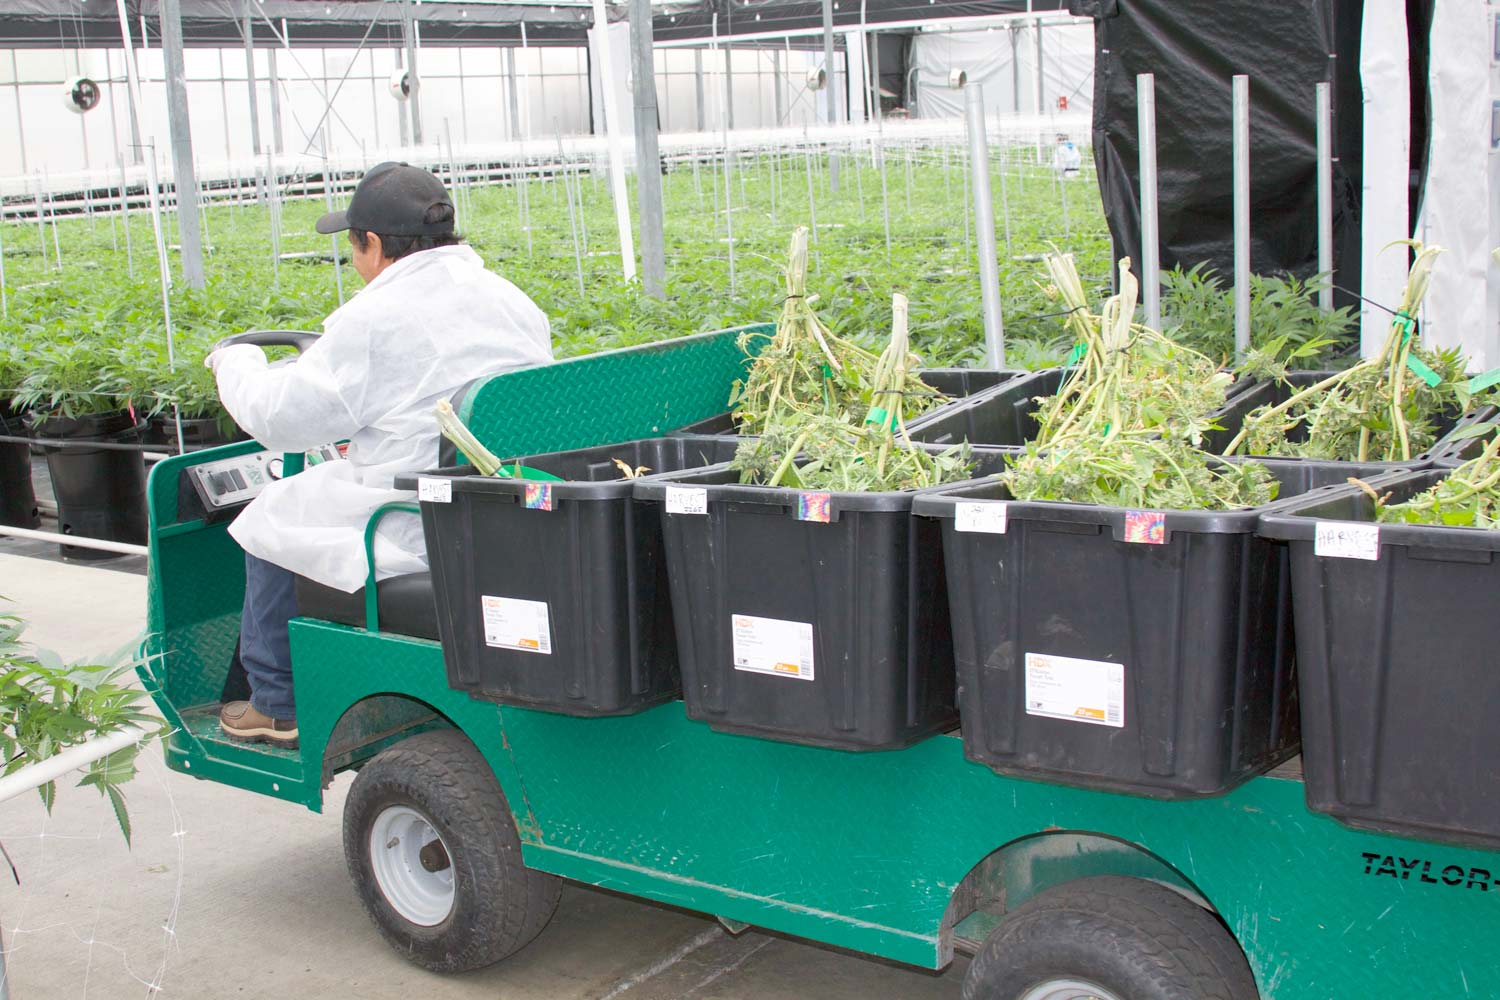 Worker driving a cart with plants